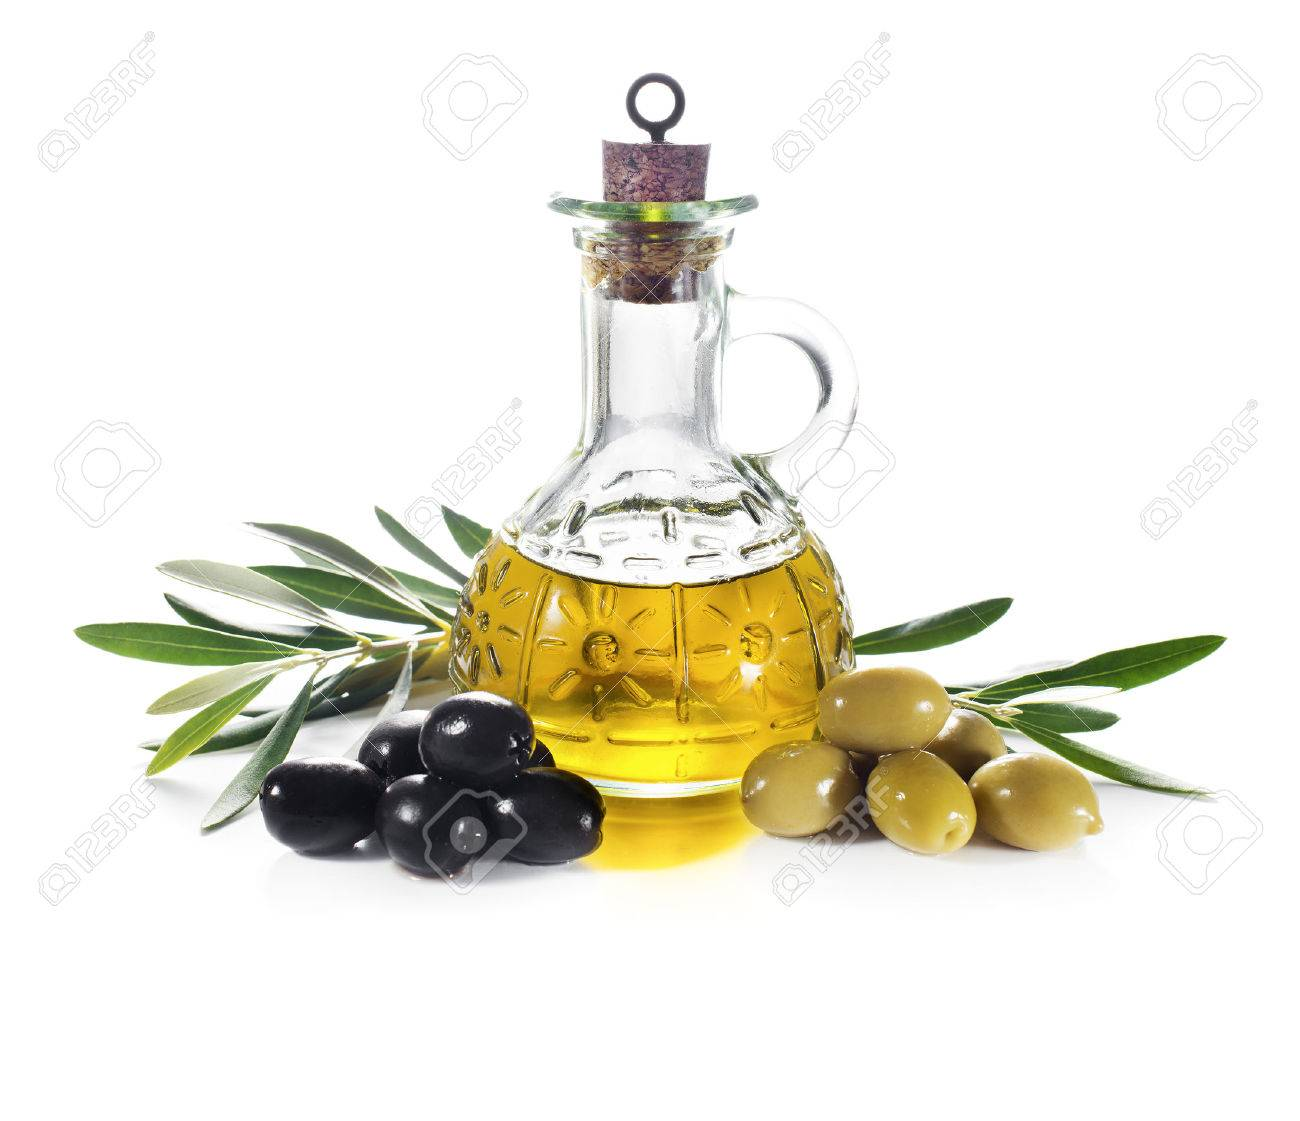 Olive oil and olive branch isolated on white - 37355222